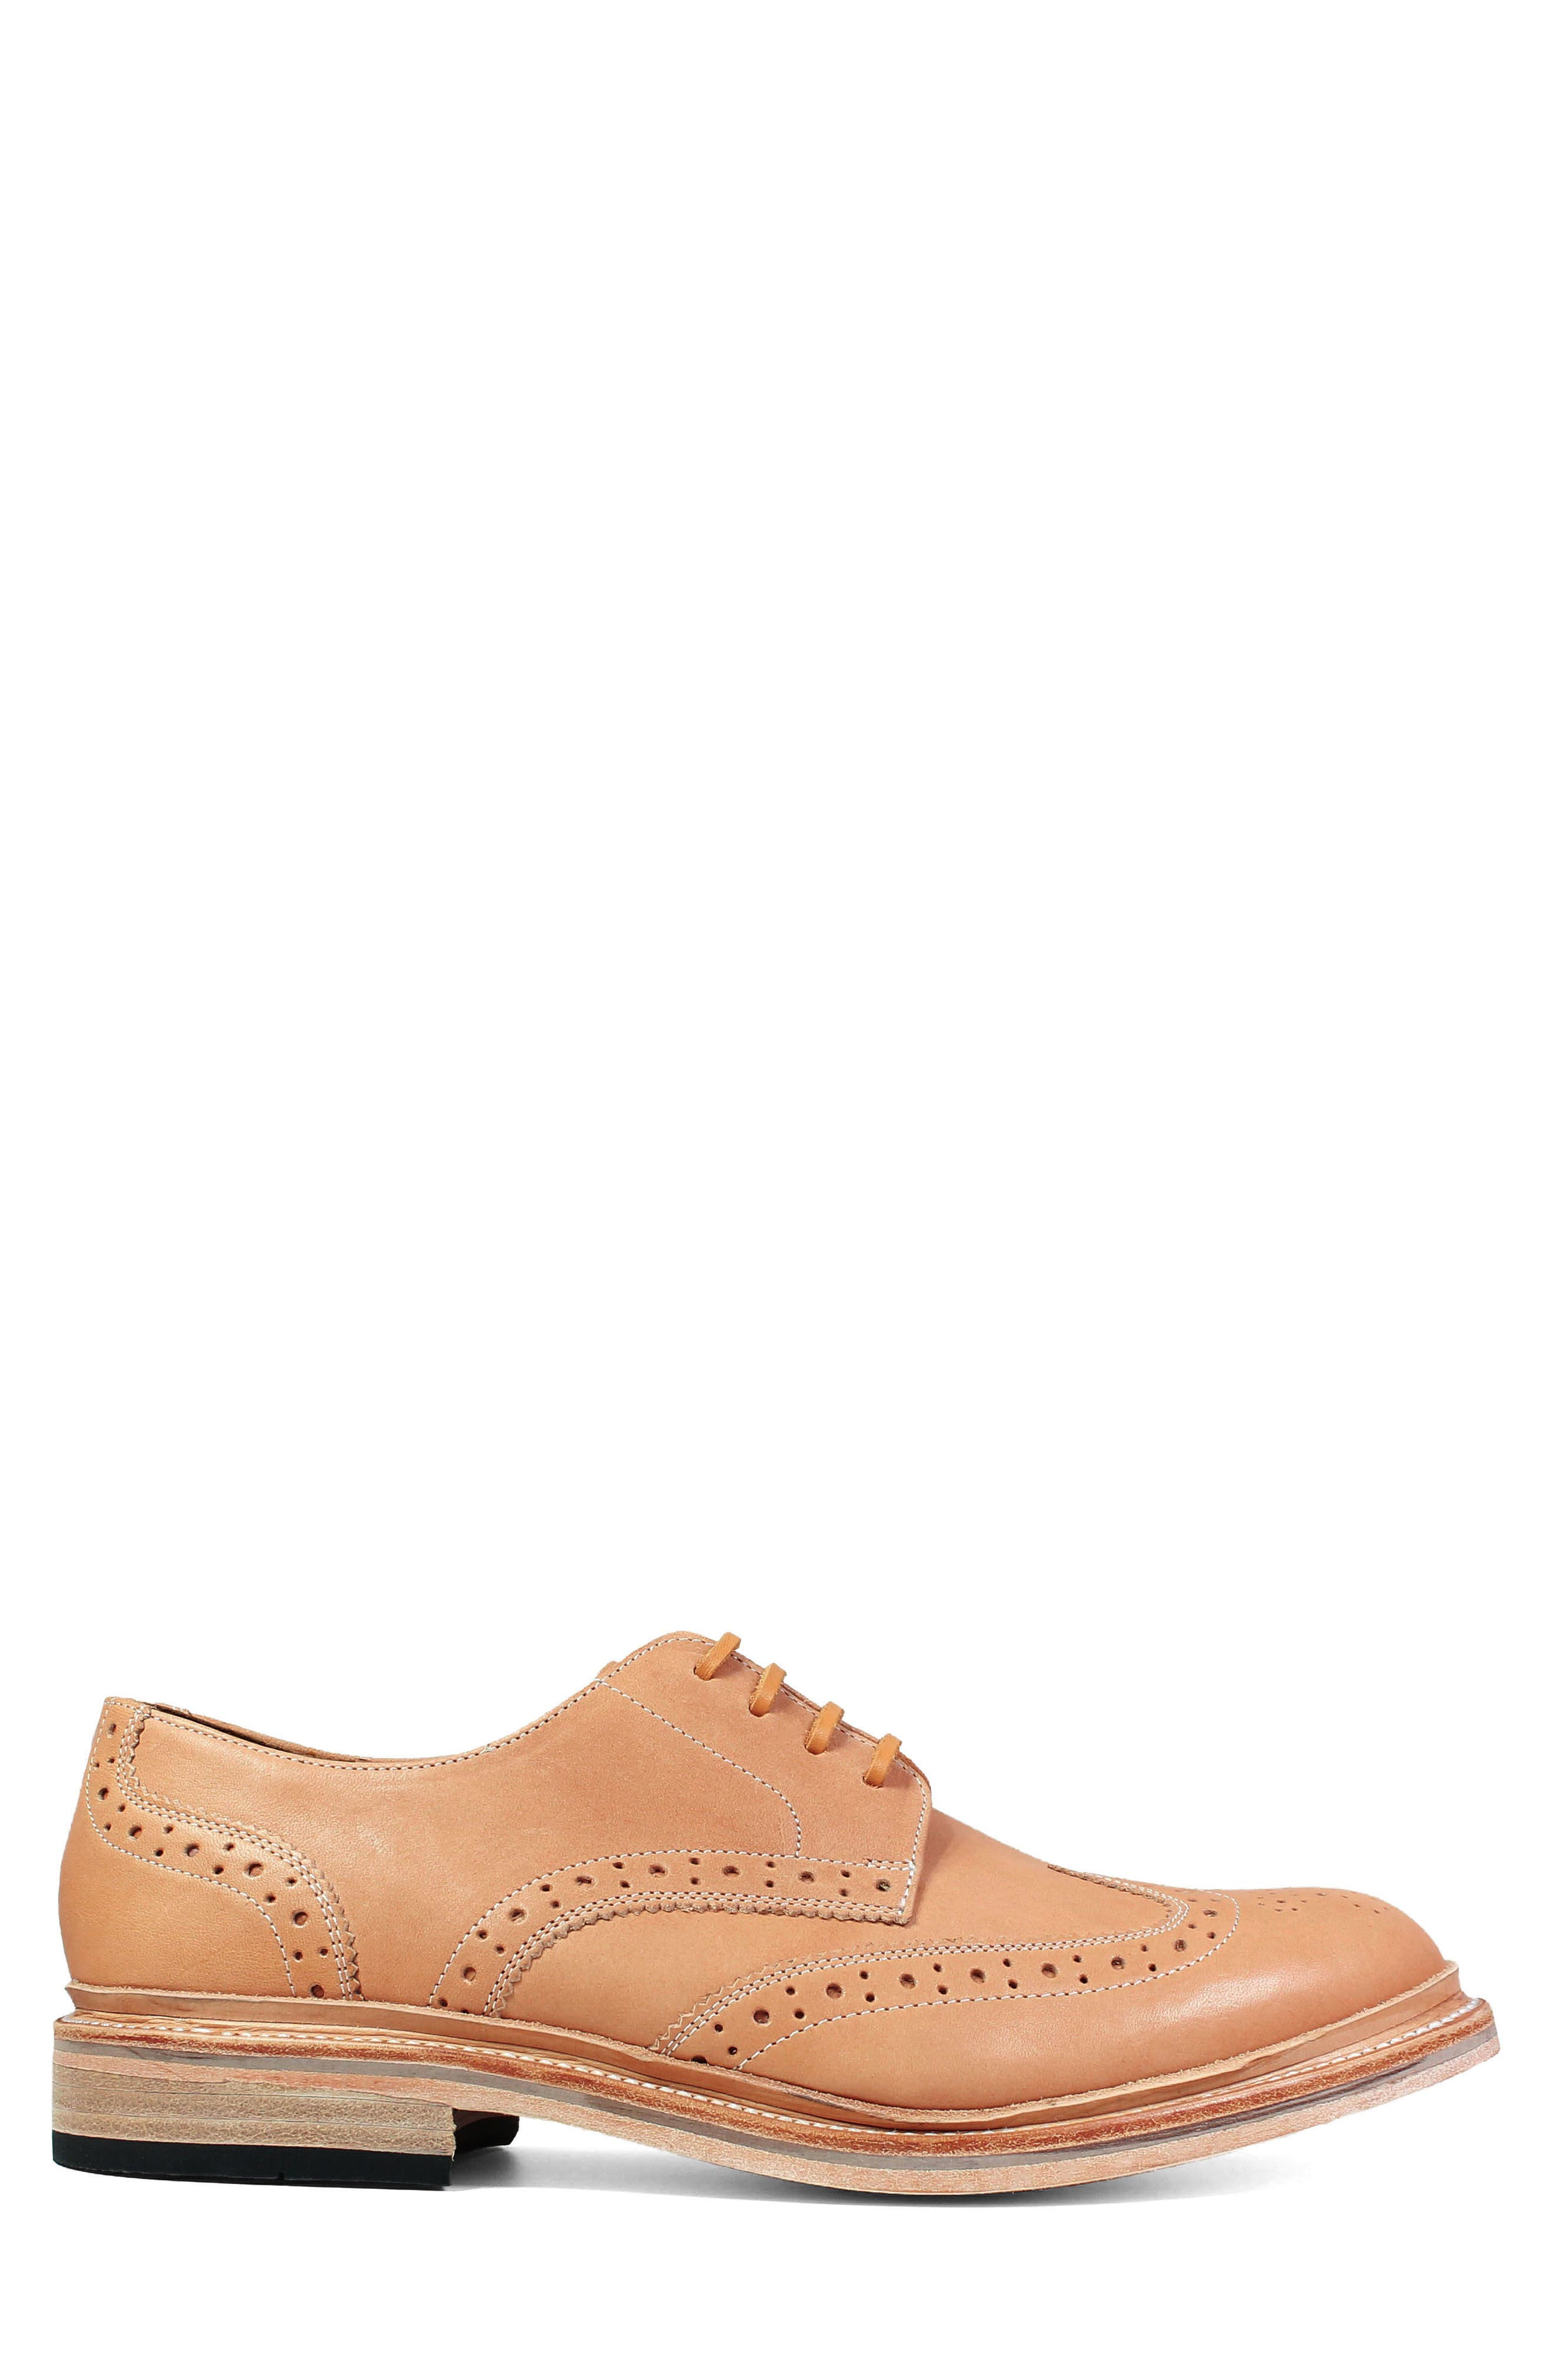 M2 Wingtip Derby,                             Alternate thumbnail 3, color,                             NATURAL LEATHER